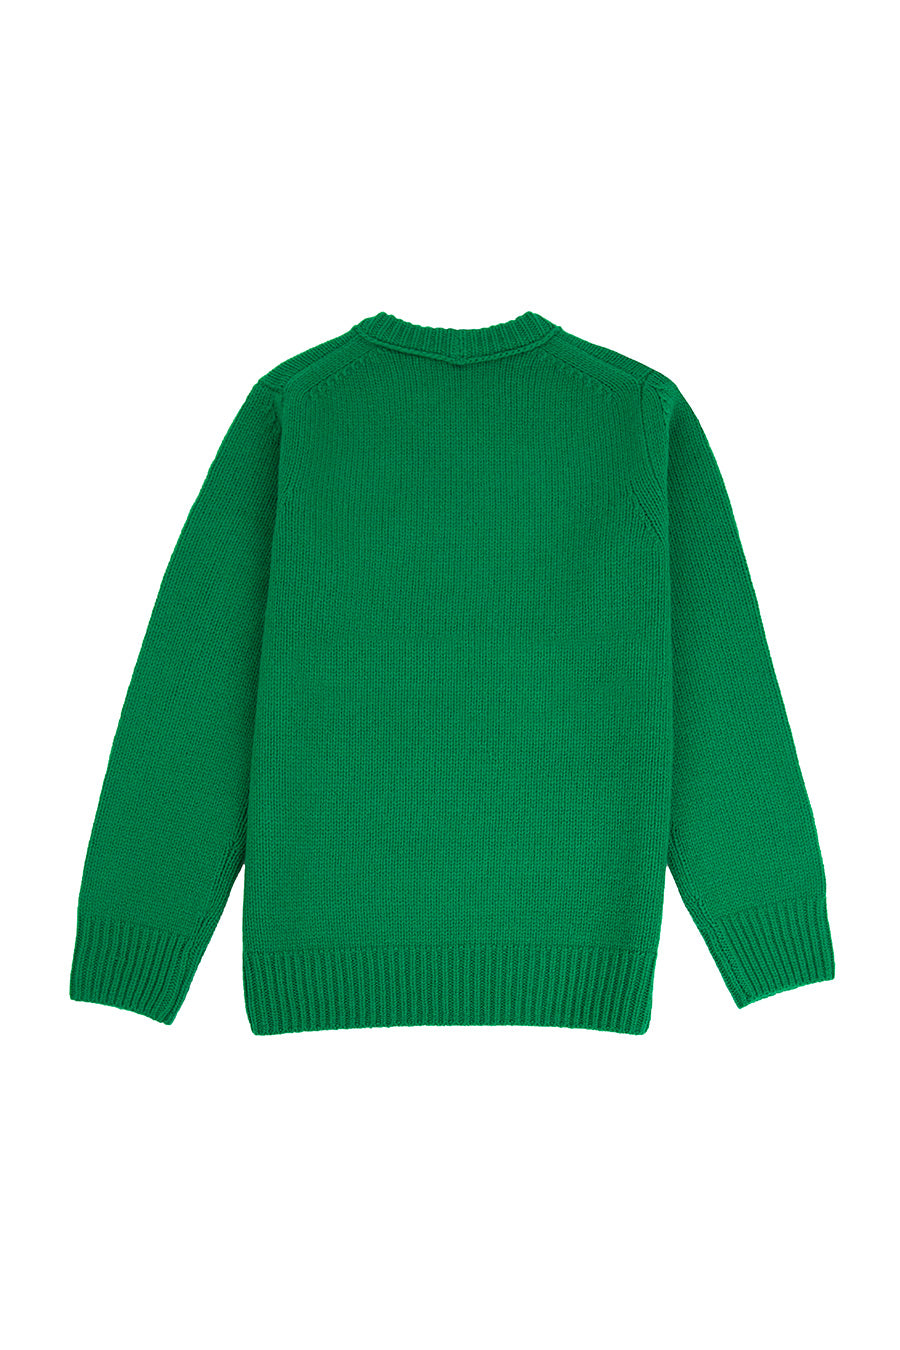 Helmut Lang - Green Helmut Land® Crewneck | 1032 SPACE